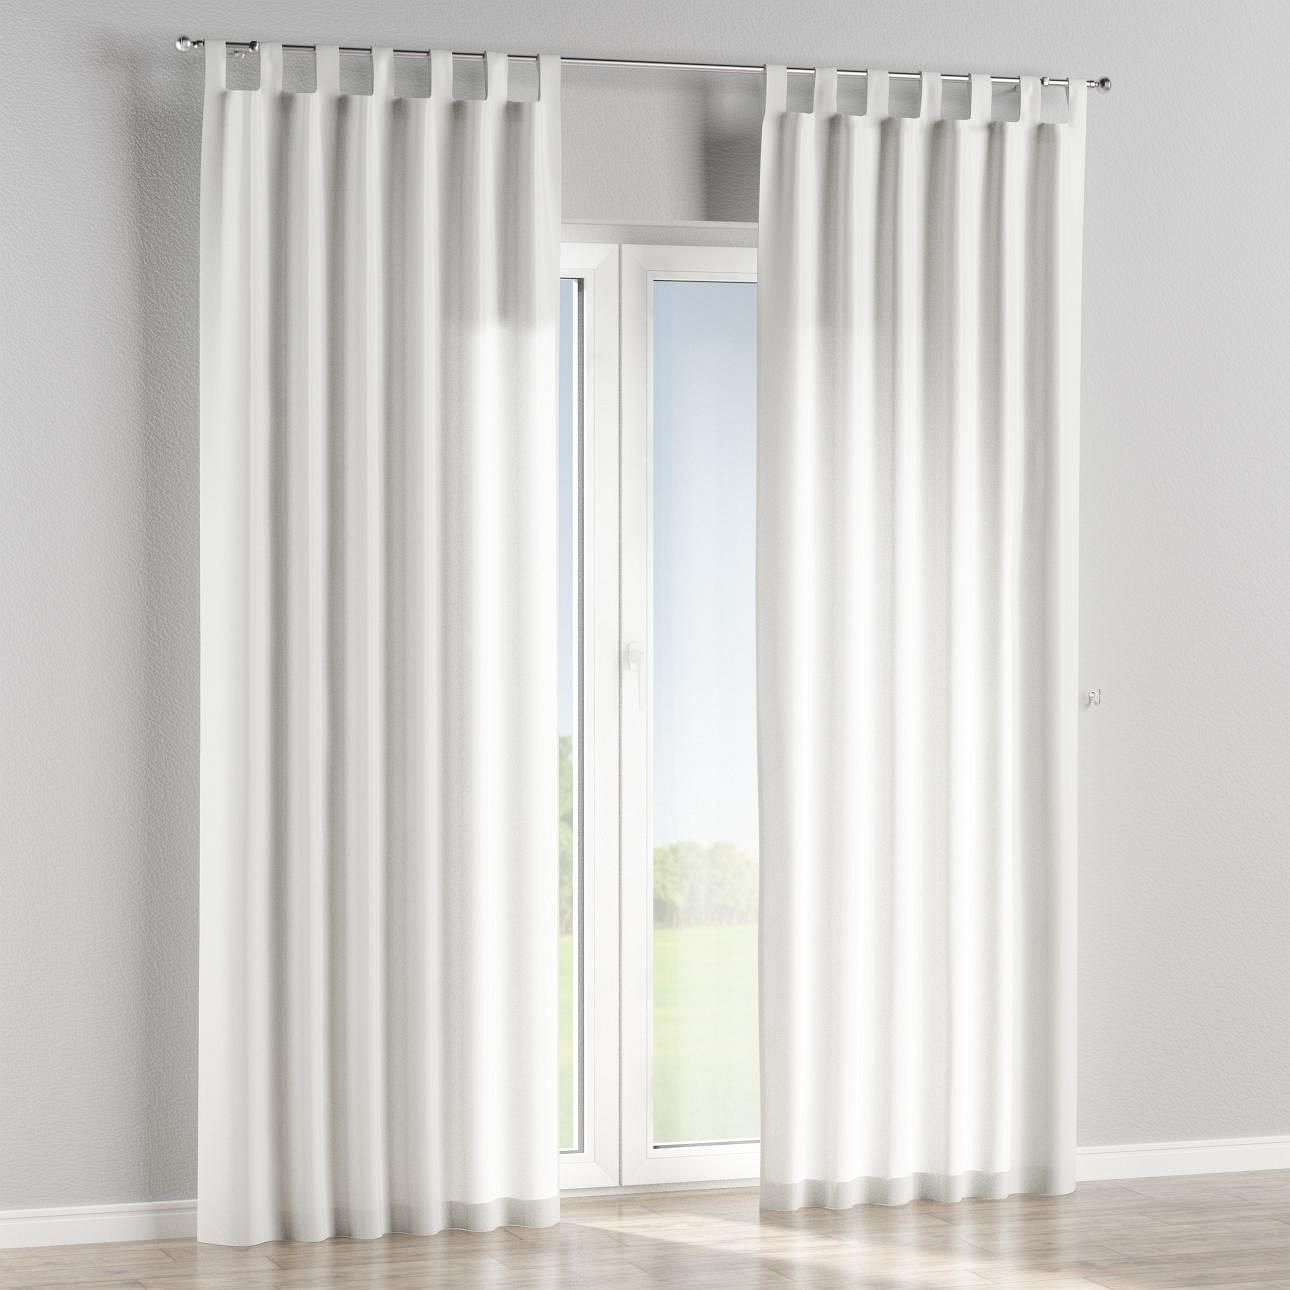 Tab top curtains in collection Cardiff, fabric: 136-31